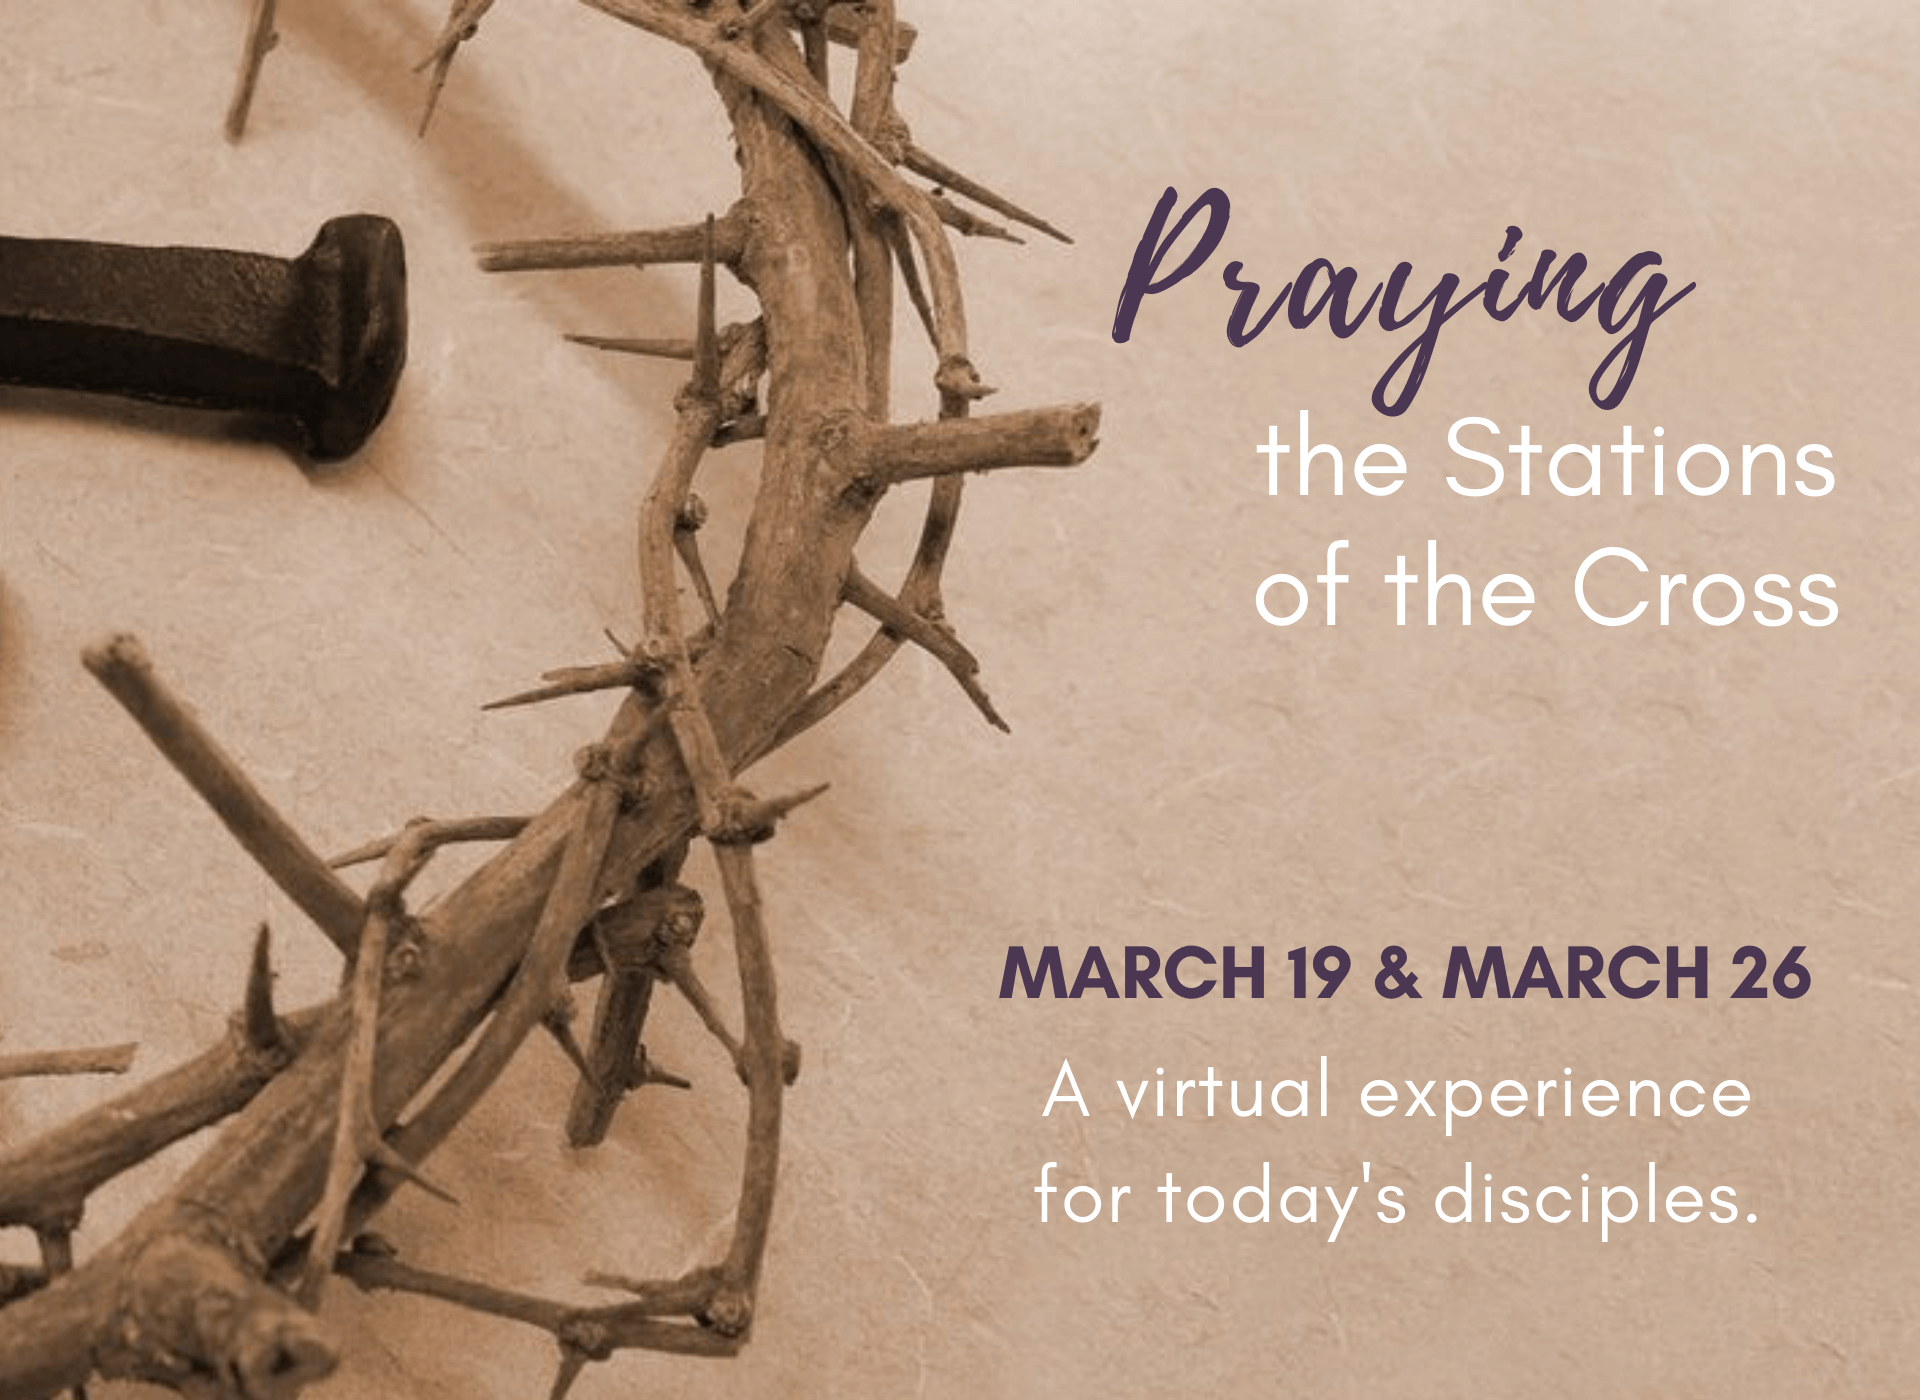 Praying the Stations of the Cross on March 19 and 26. A virtual experience for today's disciples.